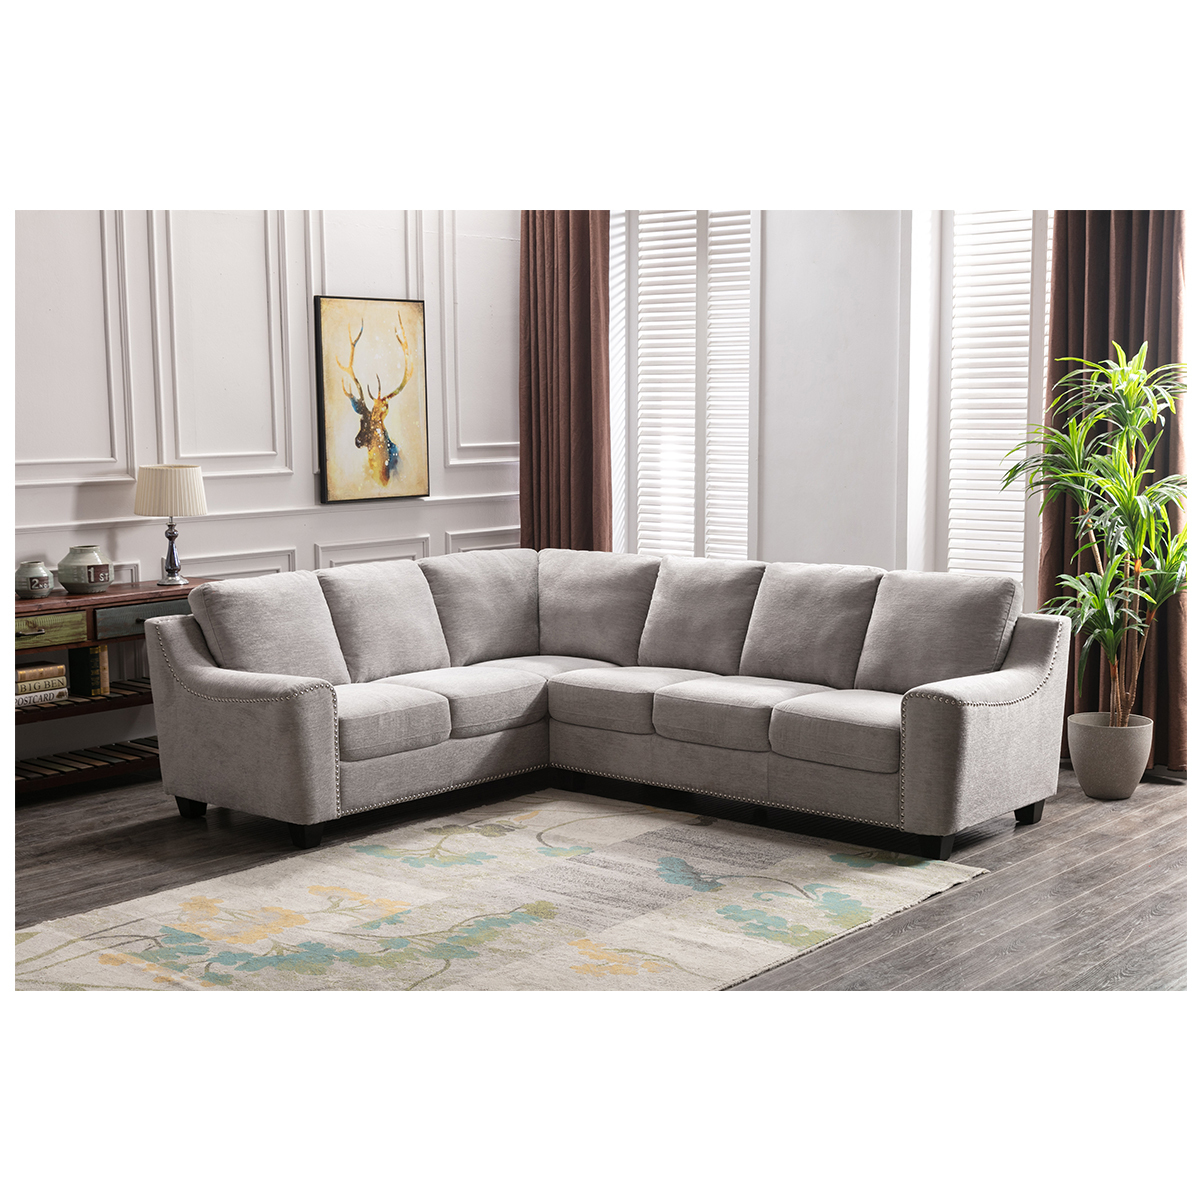 Zoy Home Furnishings Fabric Sectional Costco Australia